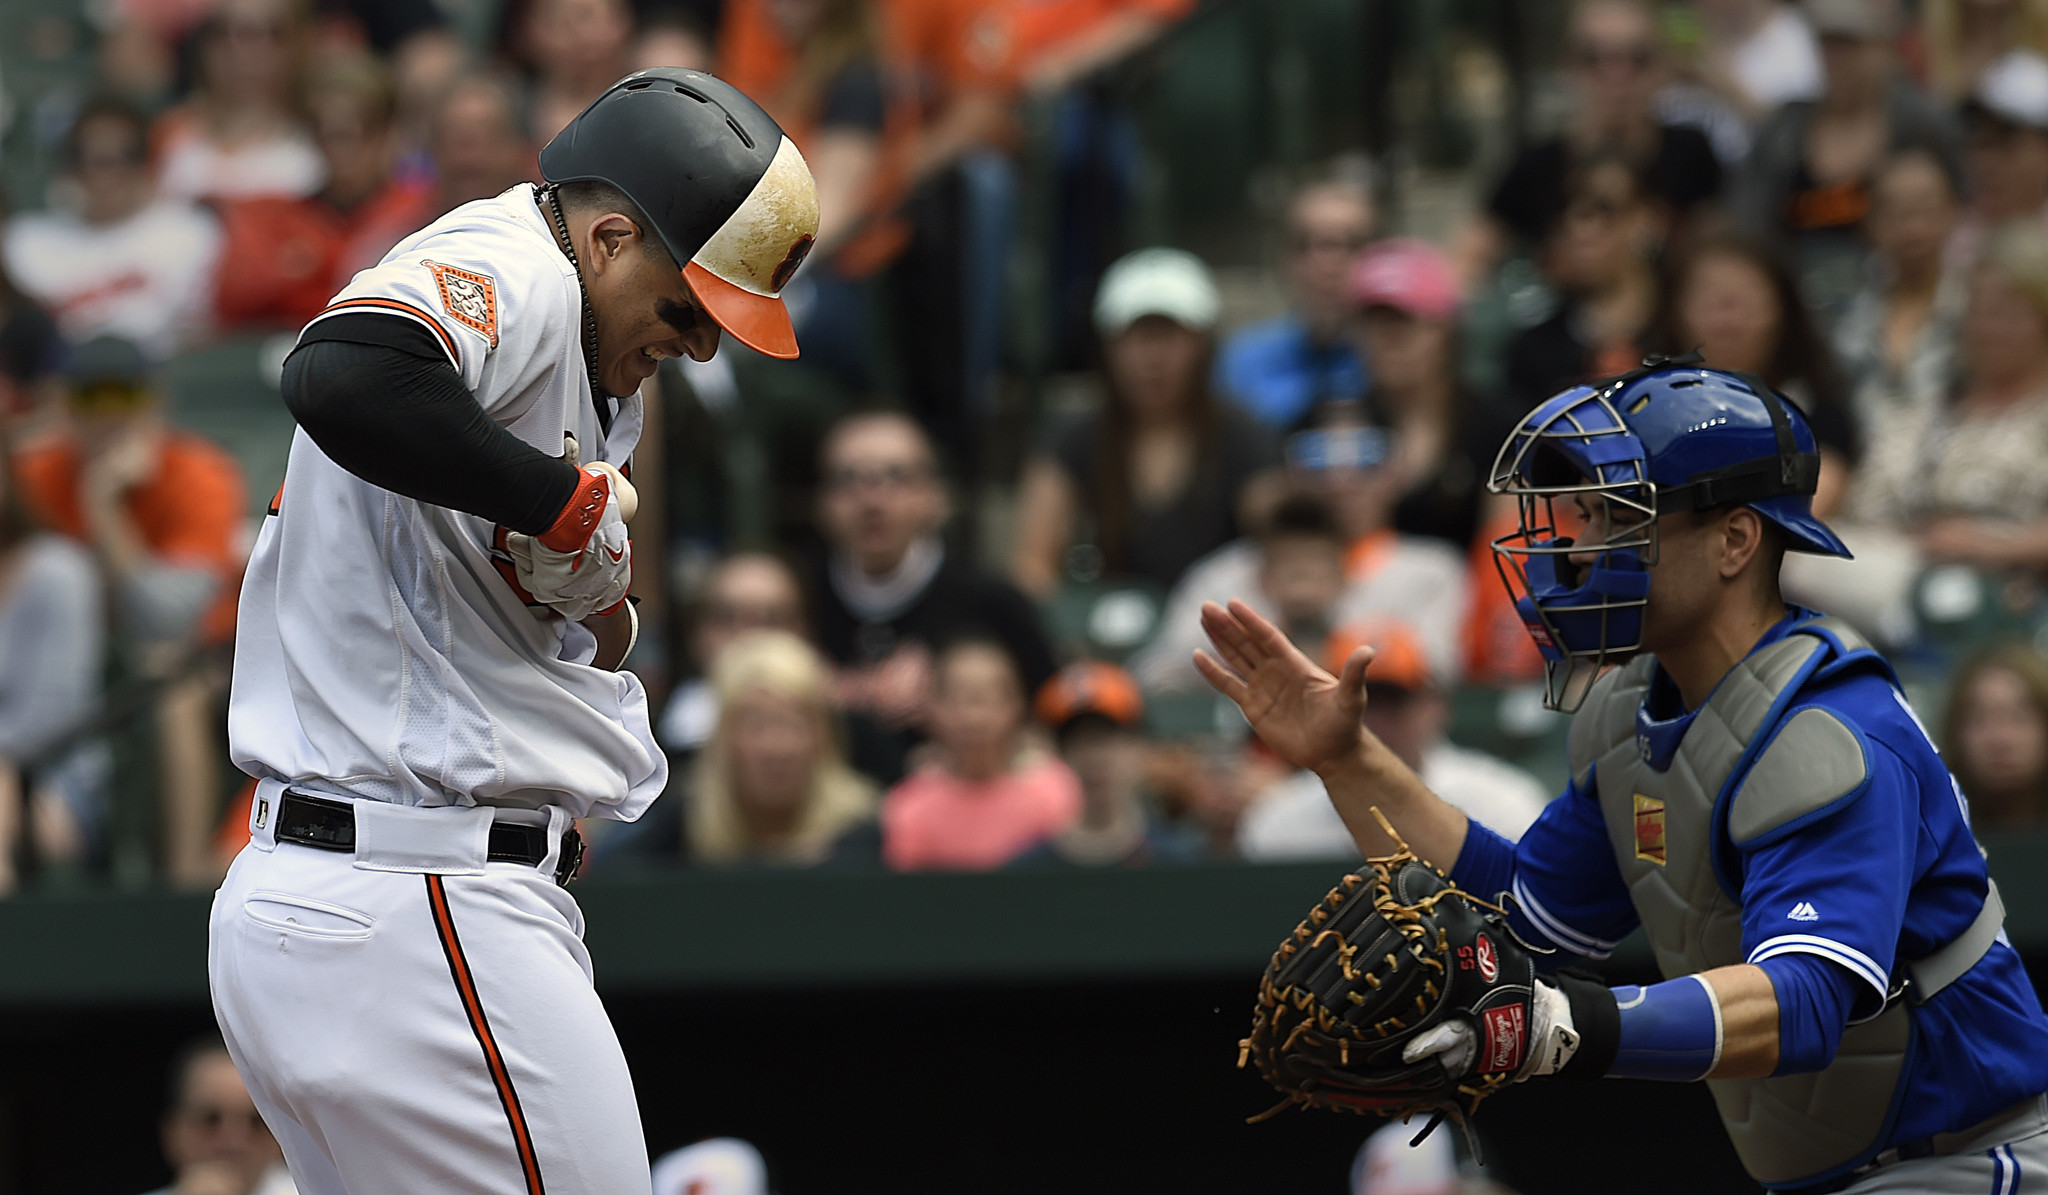 Bal-orioles-notebook-machado-to-have-precautionary-x-rays-on-left-hand-after-being-hit-by-pitch-20170521